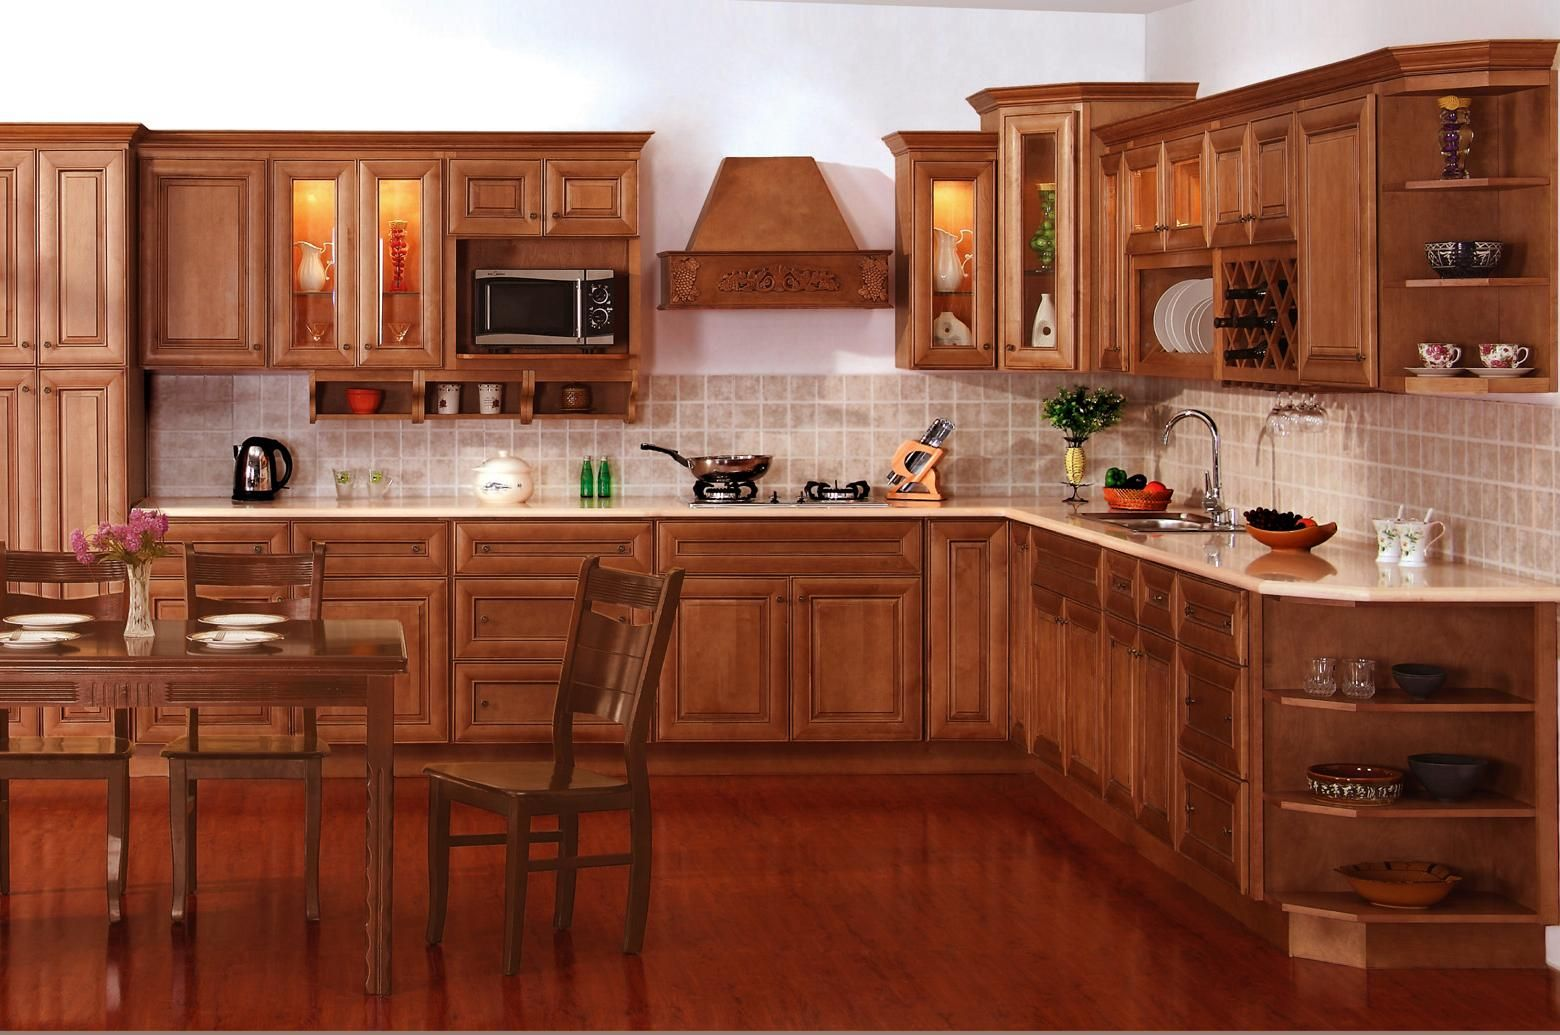 Coffee Maple Cabinets  Kitchen  Pinterest  Maple Cabinets Unique New Design Kitchen Cabinet Decorating Inspiration